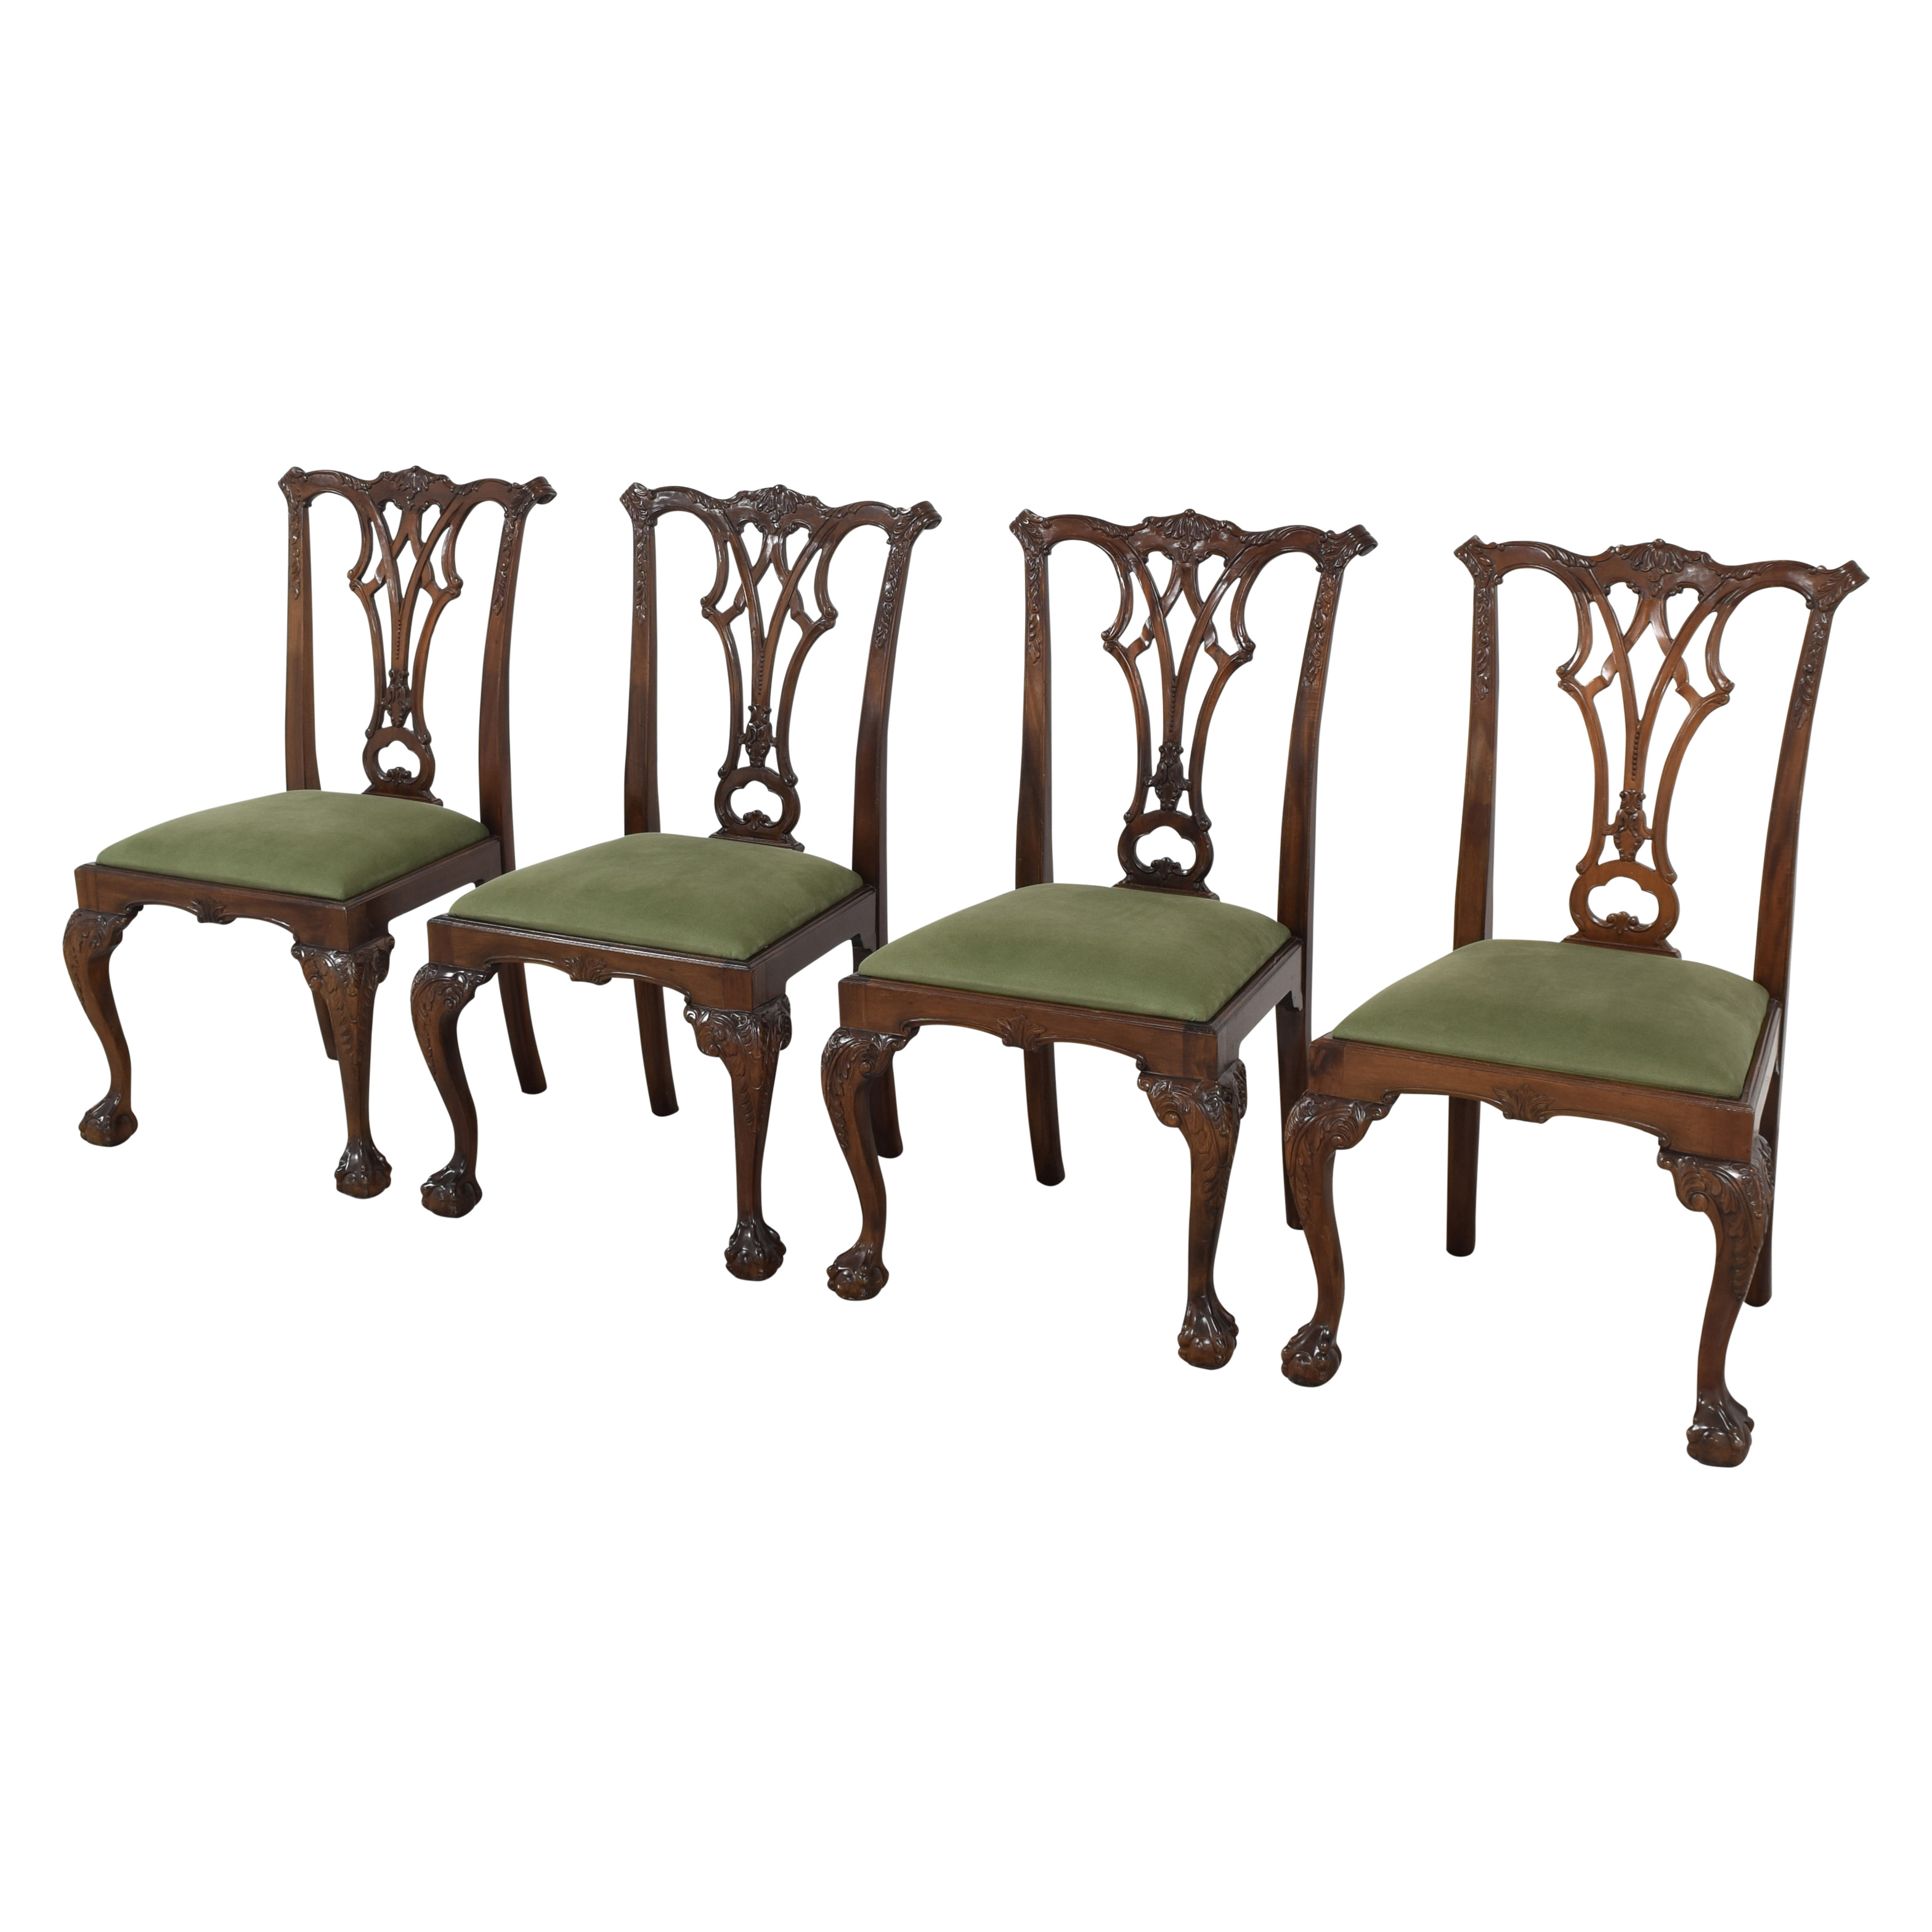 Greenbaum Interiors Queen Anne Style Dining Chairs